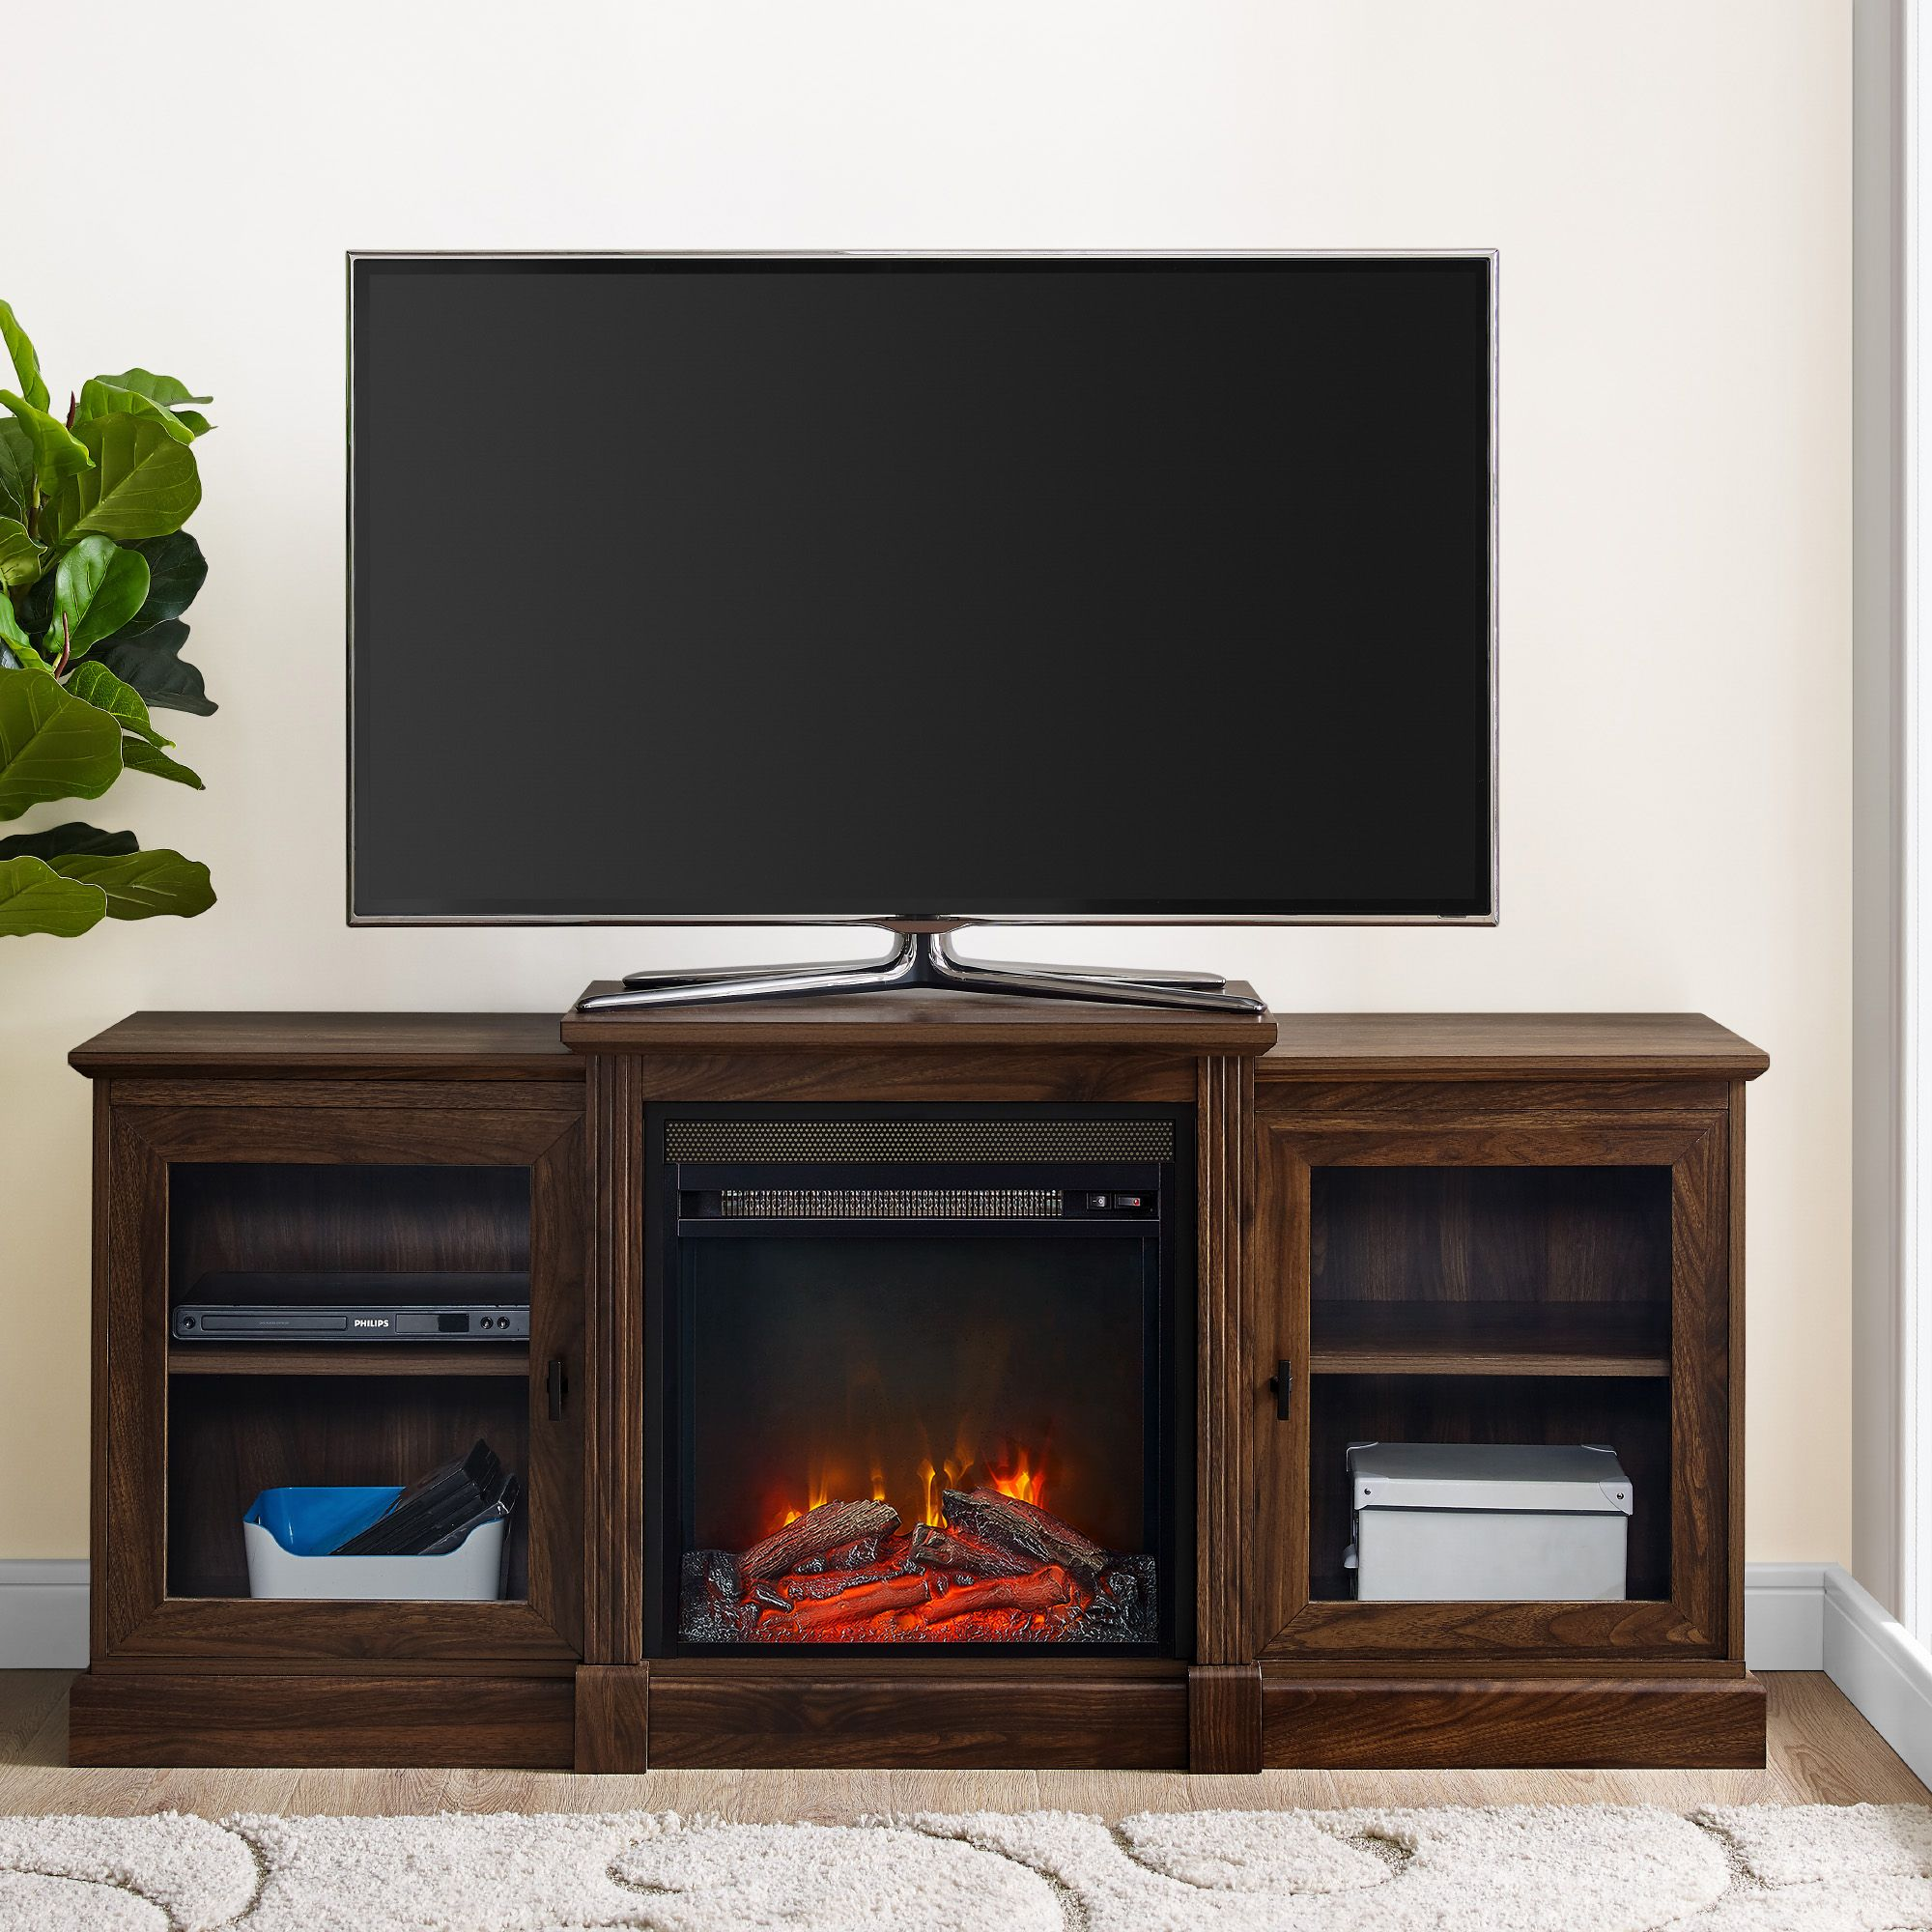 60 W Trends Chelsea Tiered Top Fireplace Tv Stand Bjs Wholesale Club